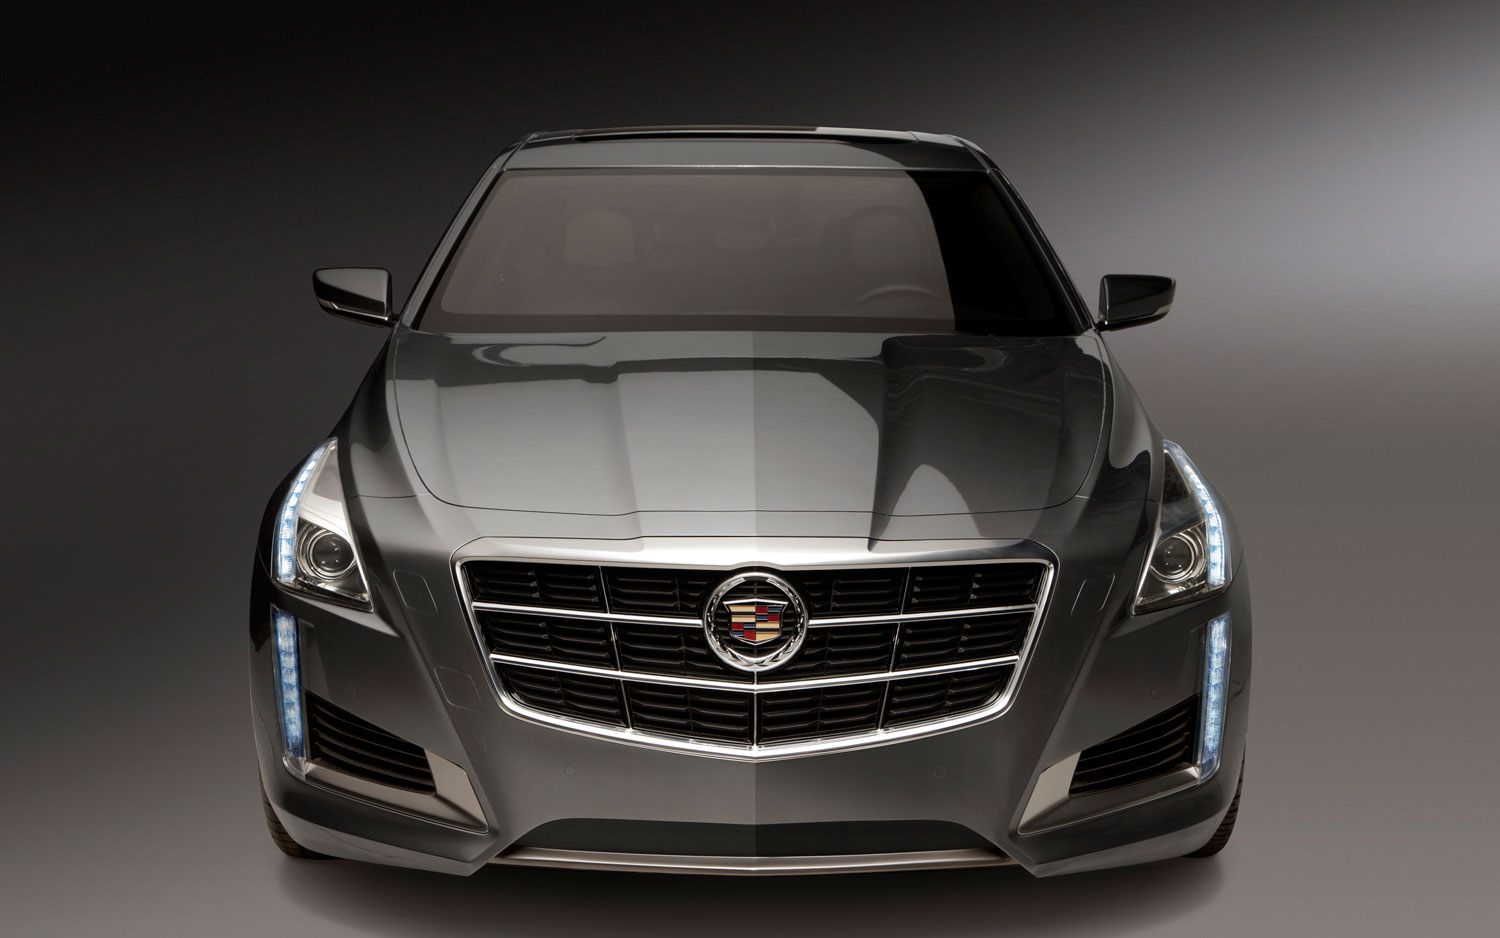 consumer reports 2014 cts sedan is best luxury car lindsay cars blog. Black Bedroom Furniture Sets. Home Design Ideas